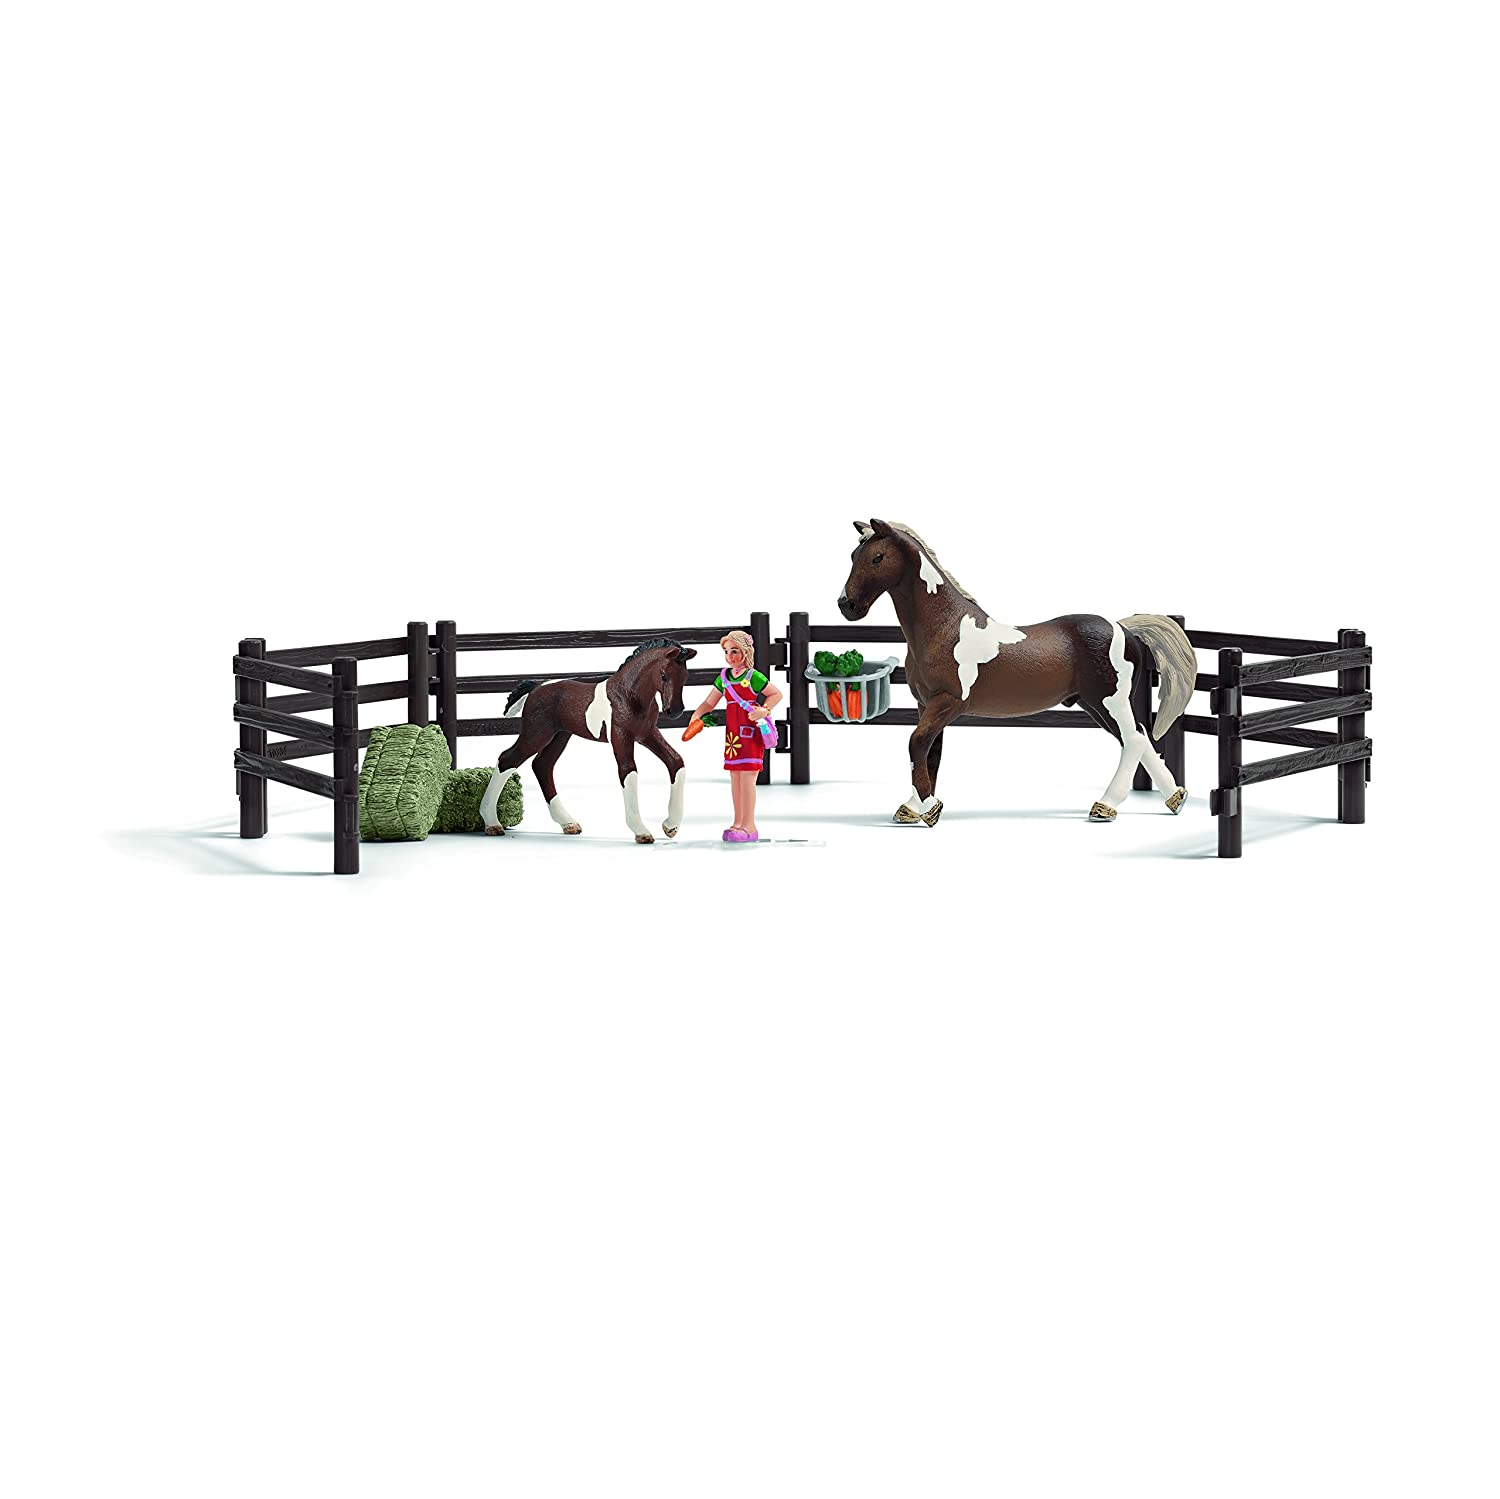 Schleich Horse Feeding Play Set Schleich North America 21049